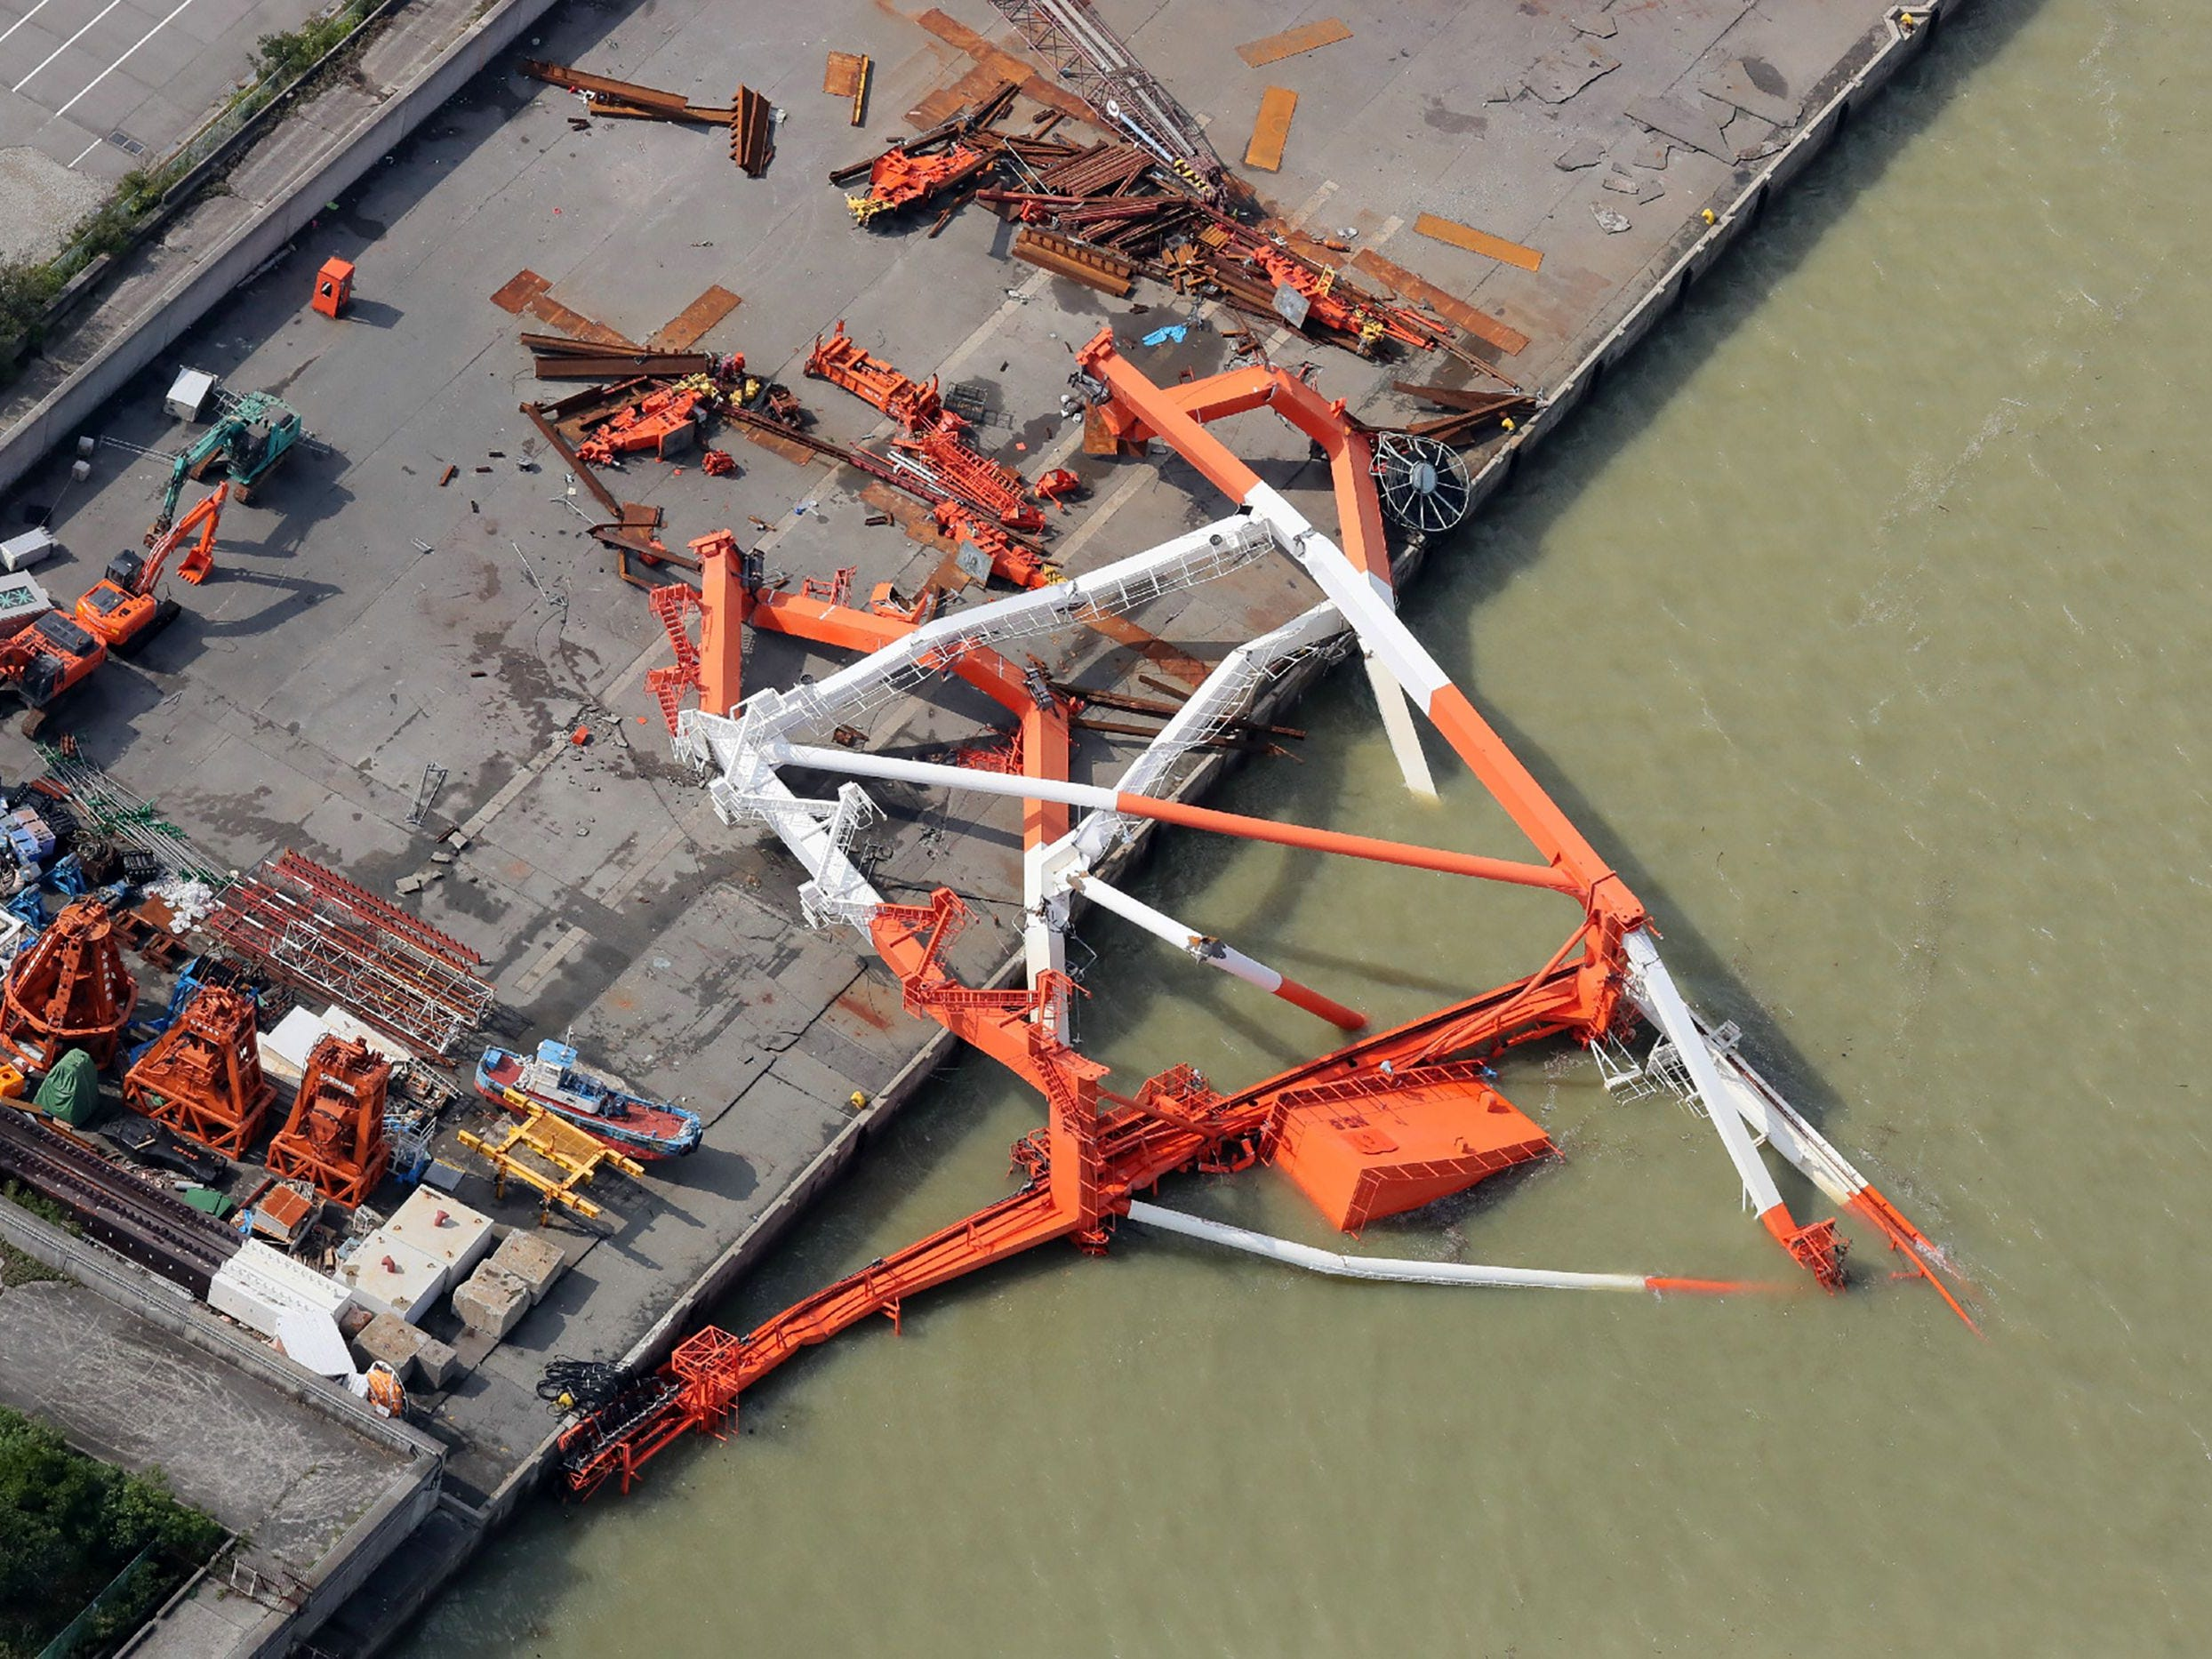 A crane is toppled due to strong winds in Nishinomiya city, Hyogo prefecture on Sept. 5, 2018, after typhoon Jebi hit the west coast of Japan.